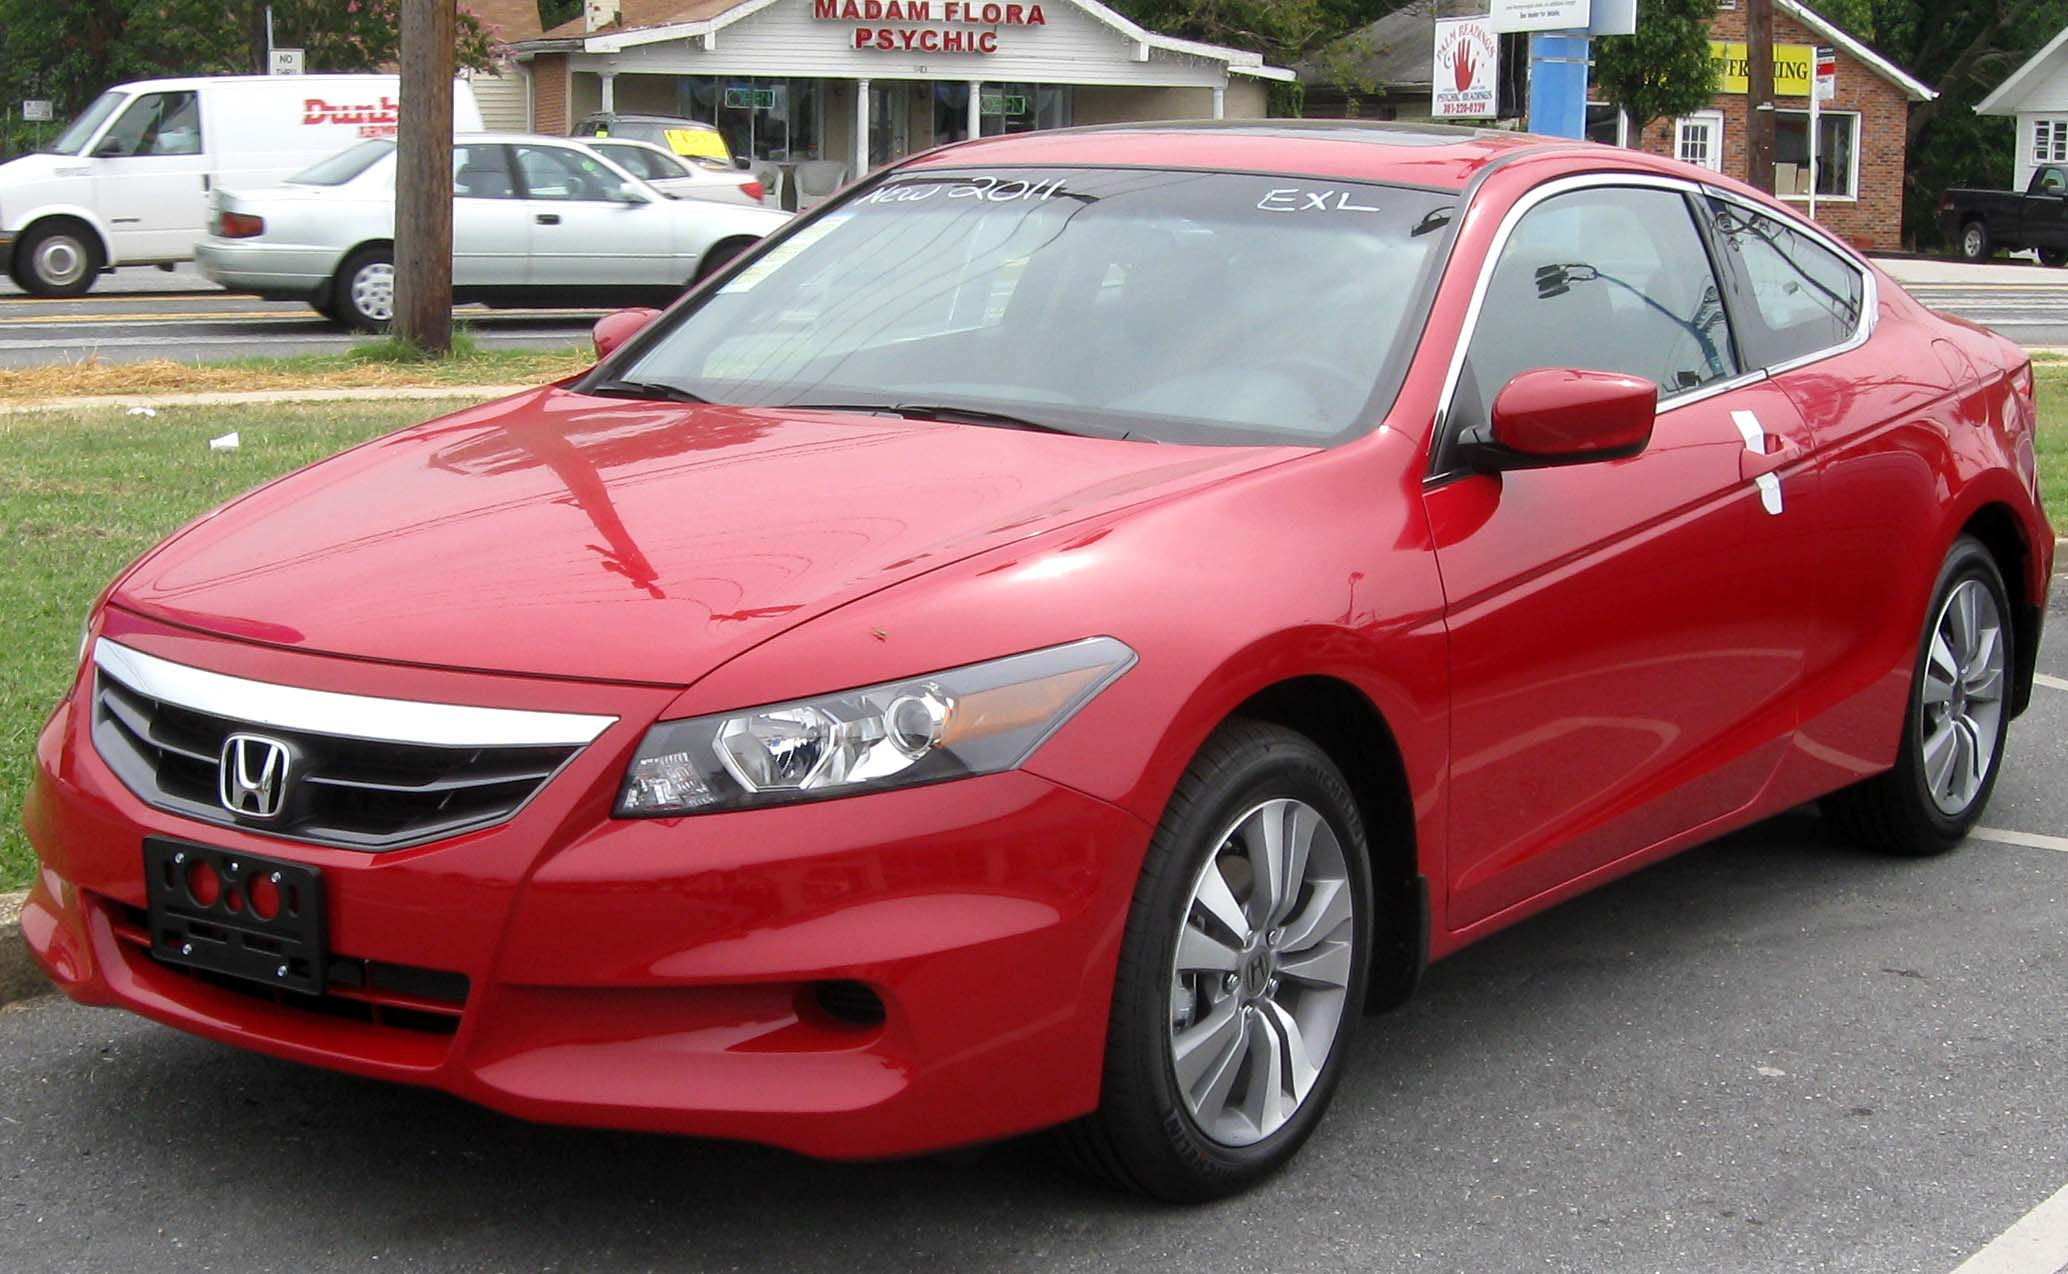 2018 Honda Accord Wiki >> File:2011 Honda Accord EX-L coupe -- 09-03-2010.jpg - Wikimedia Commons